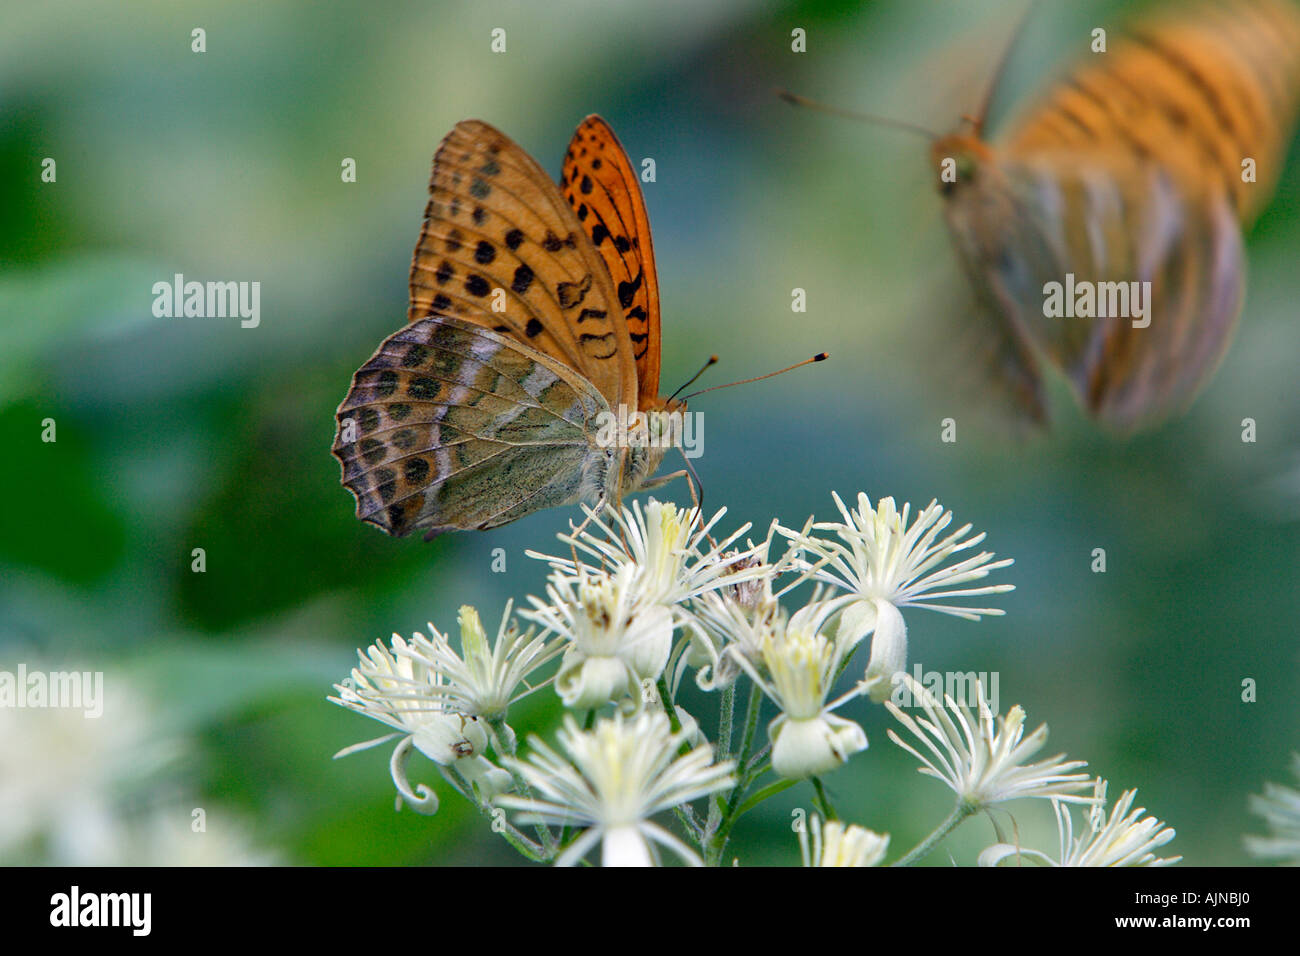 Silver-washed Fritillary, Argynnis paphia, butterfly feeding on Travellers'-joy blossom, Clematis vitalba - Stock Image